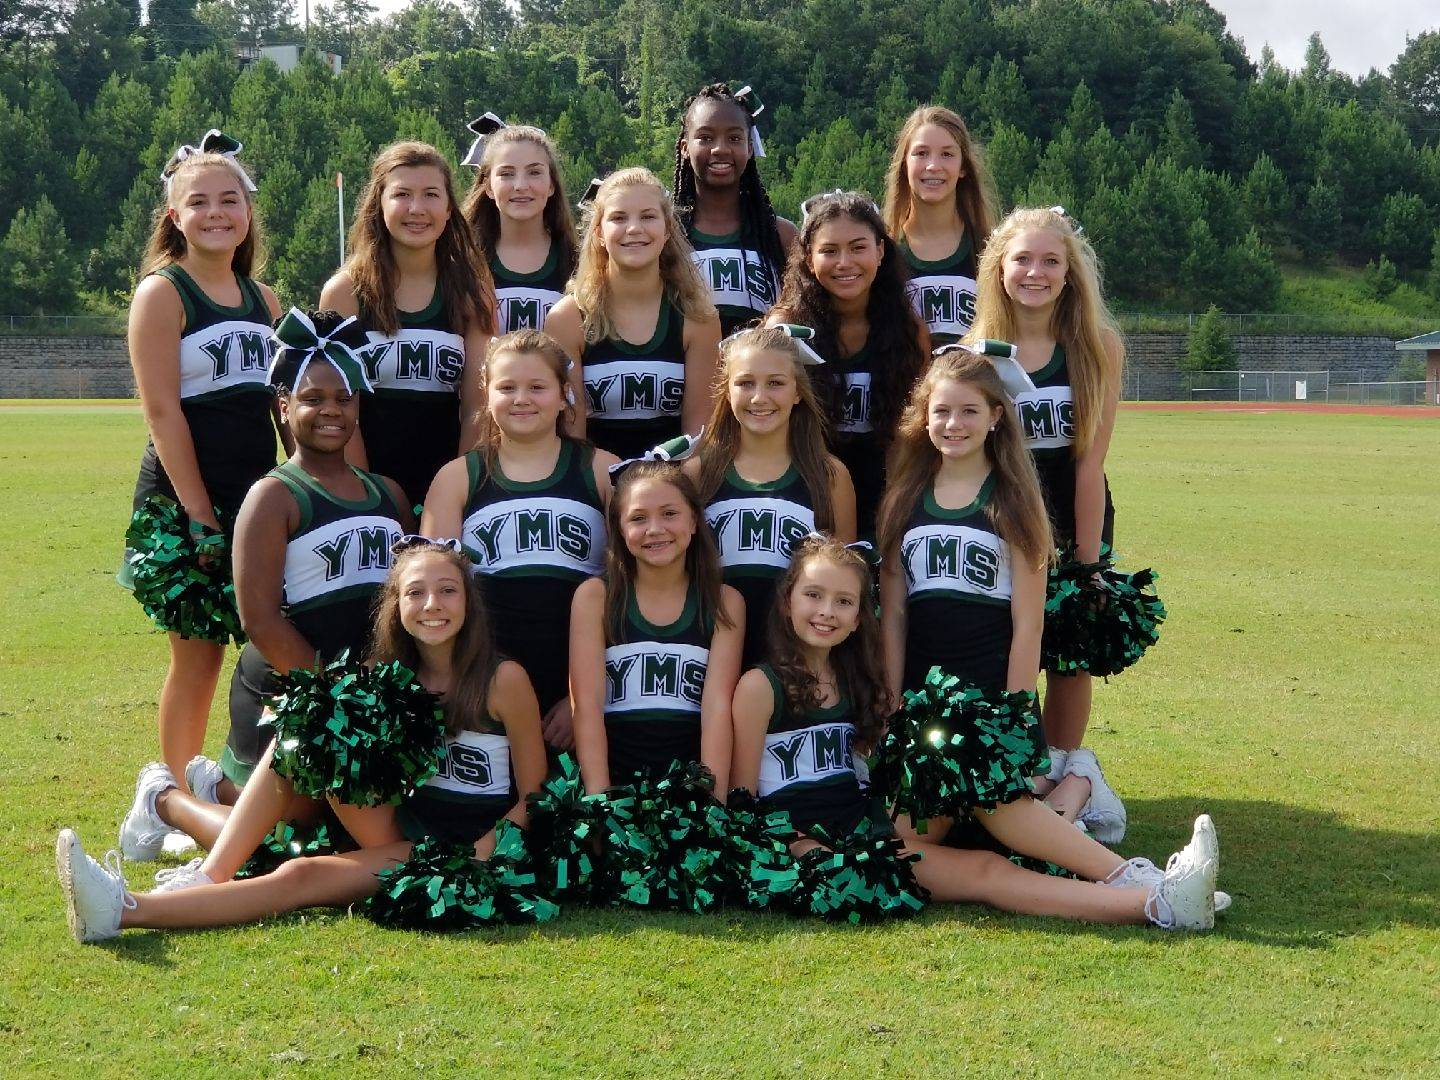 YMS Cheerleaders